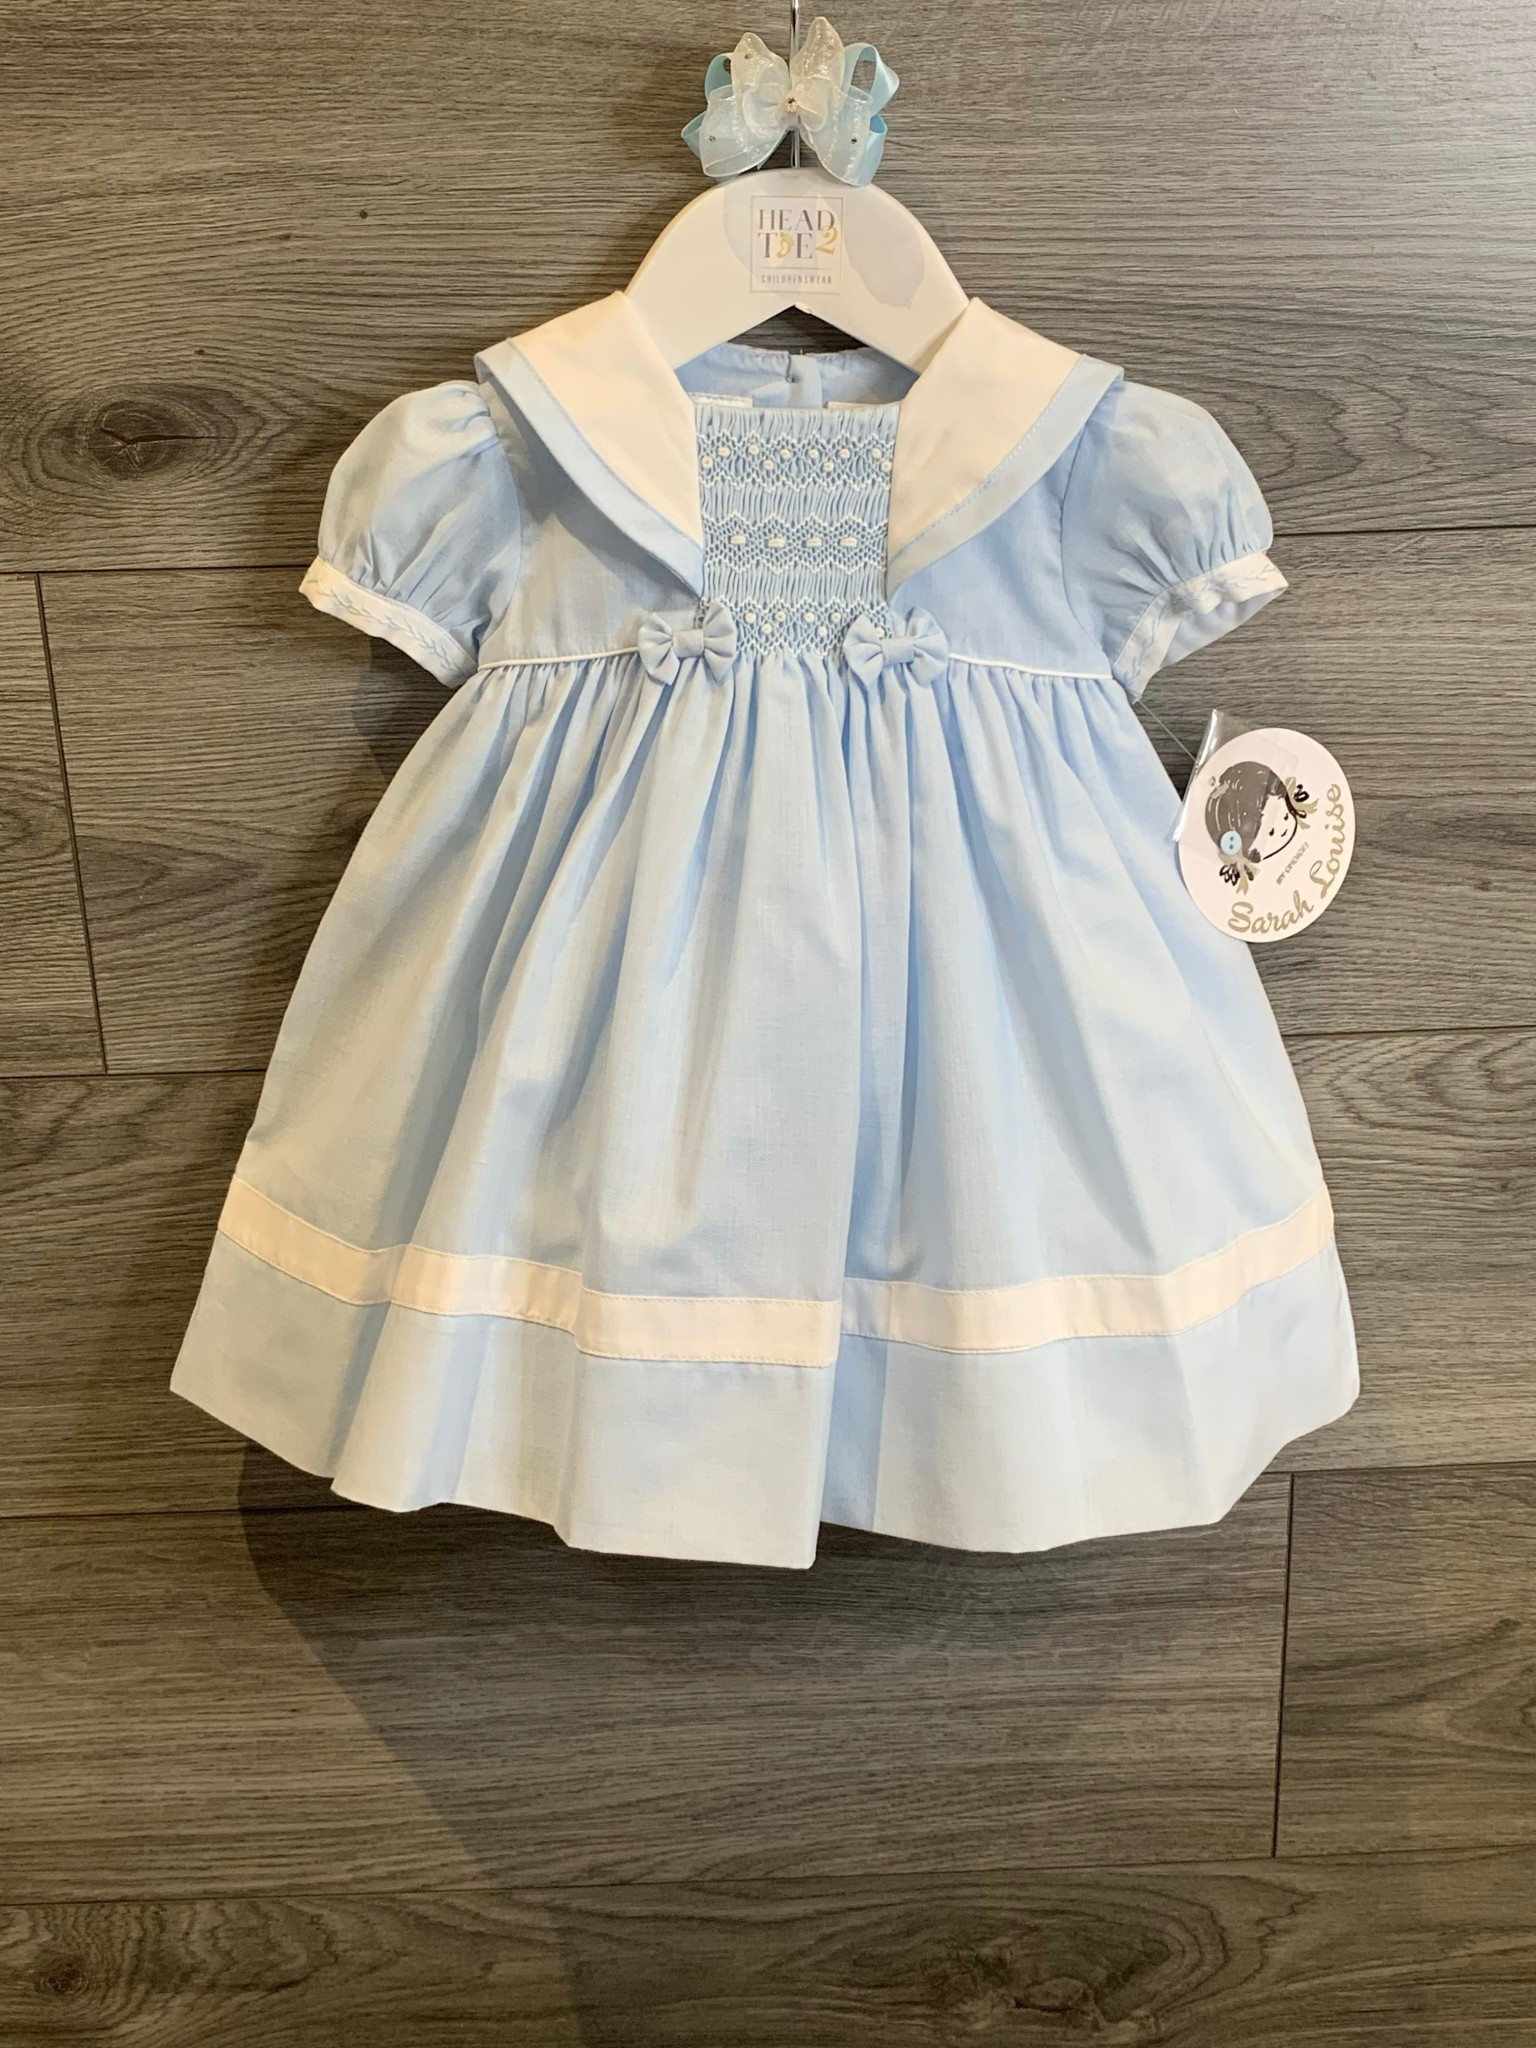 Sarah Louise Sarah Louise SS20 Pale Blue and White Smocked Dress 011869